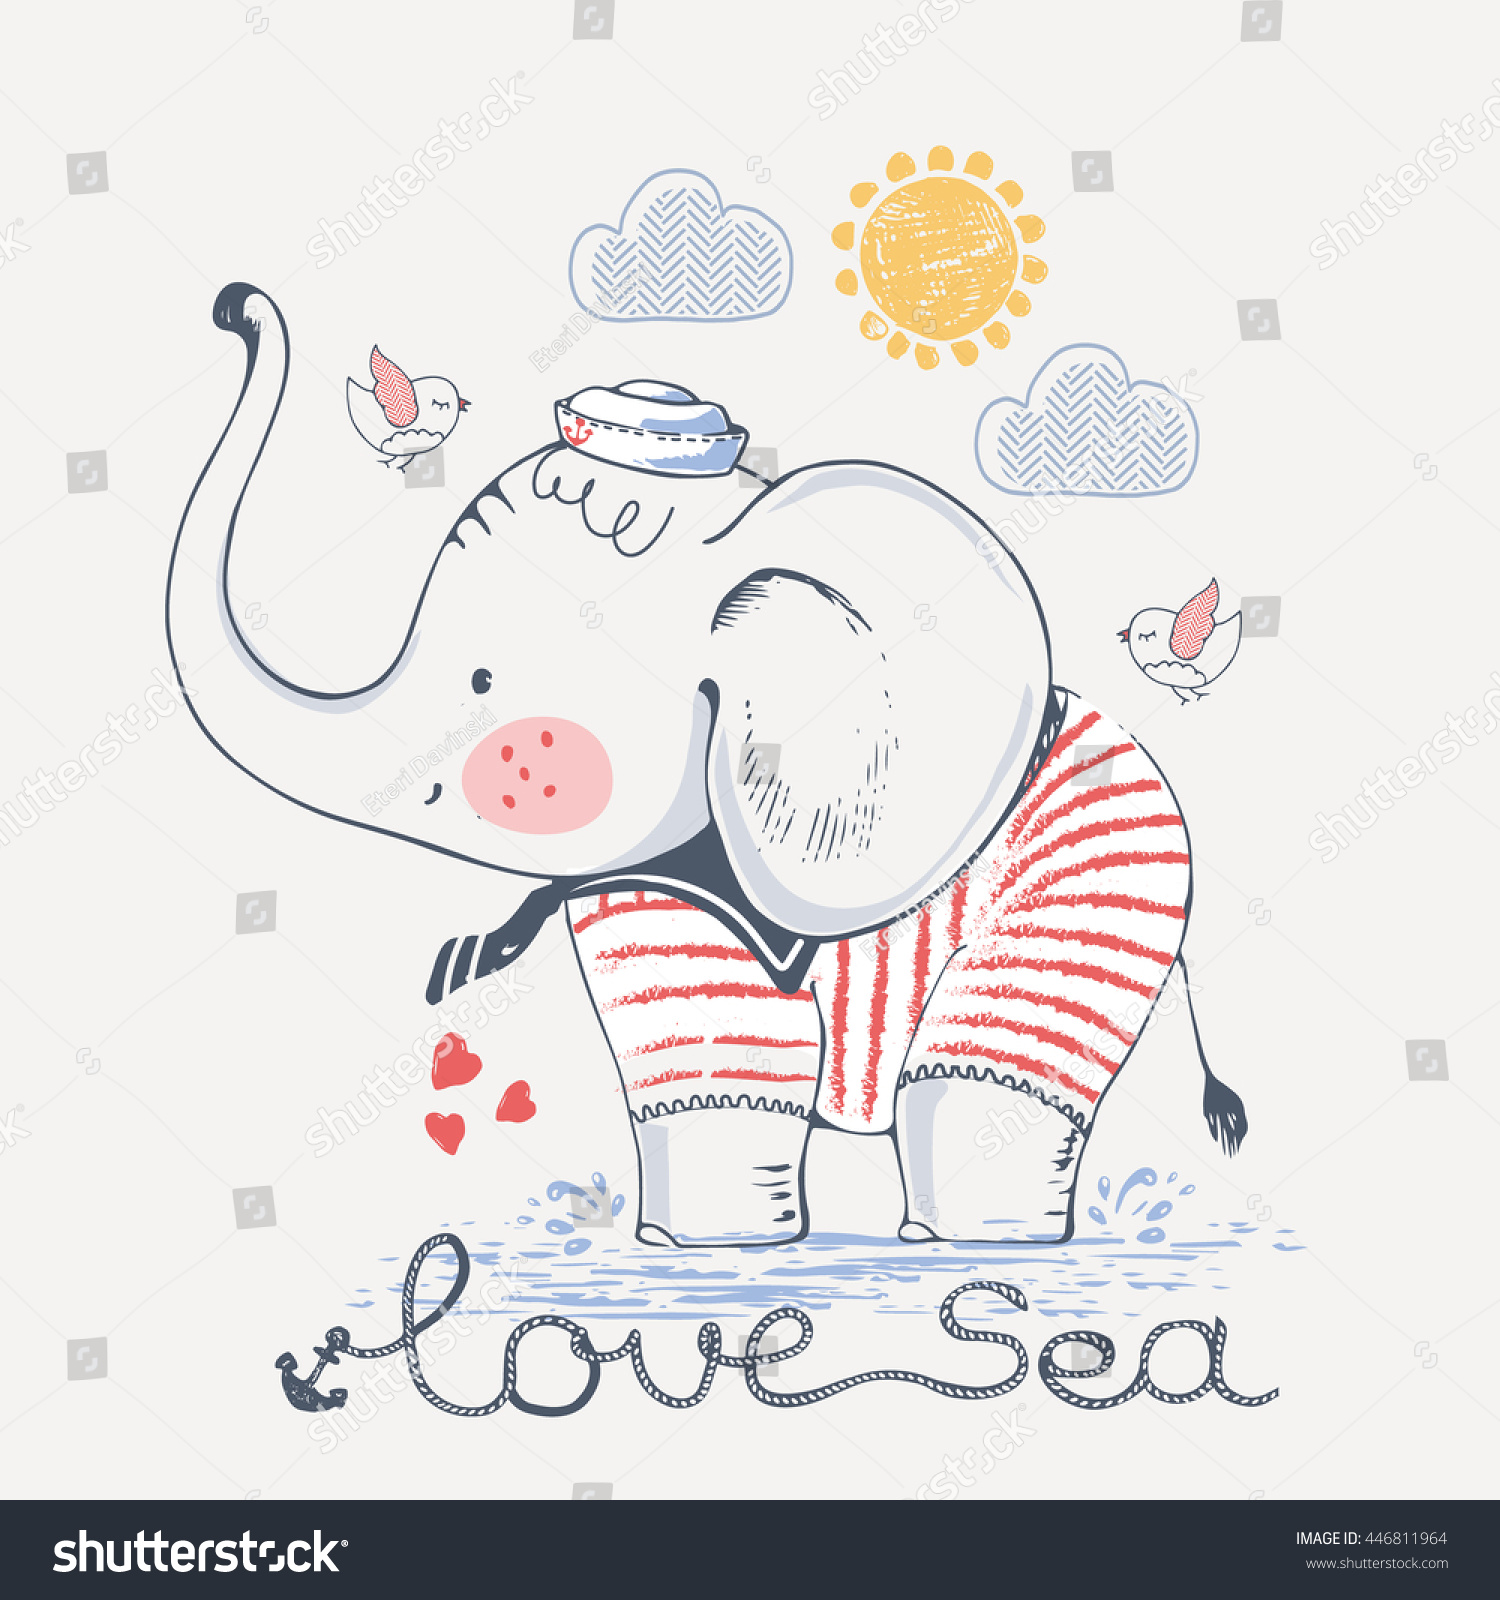 Sailor stock photos illustrations and vector art - Sailor Elephant Hand Drawn Vector Illustration Can Be Used For Kid S Or Baby S Shirt